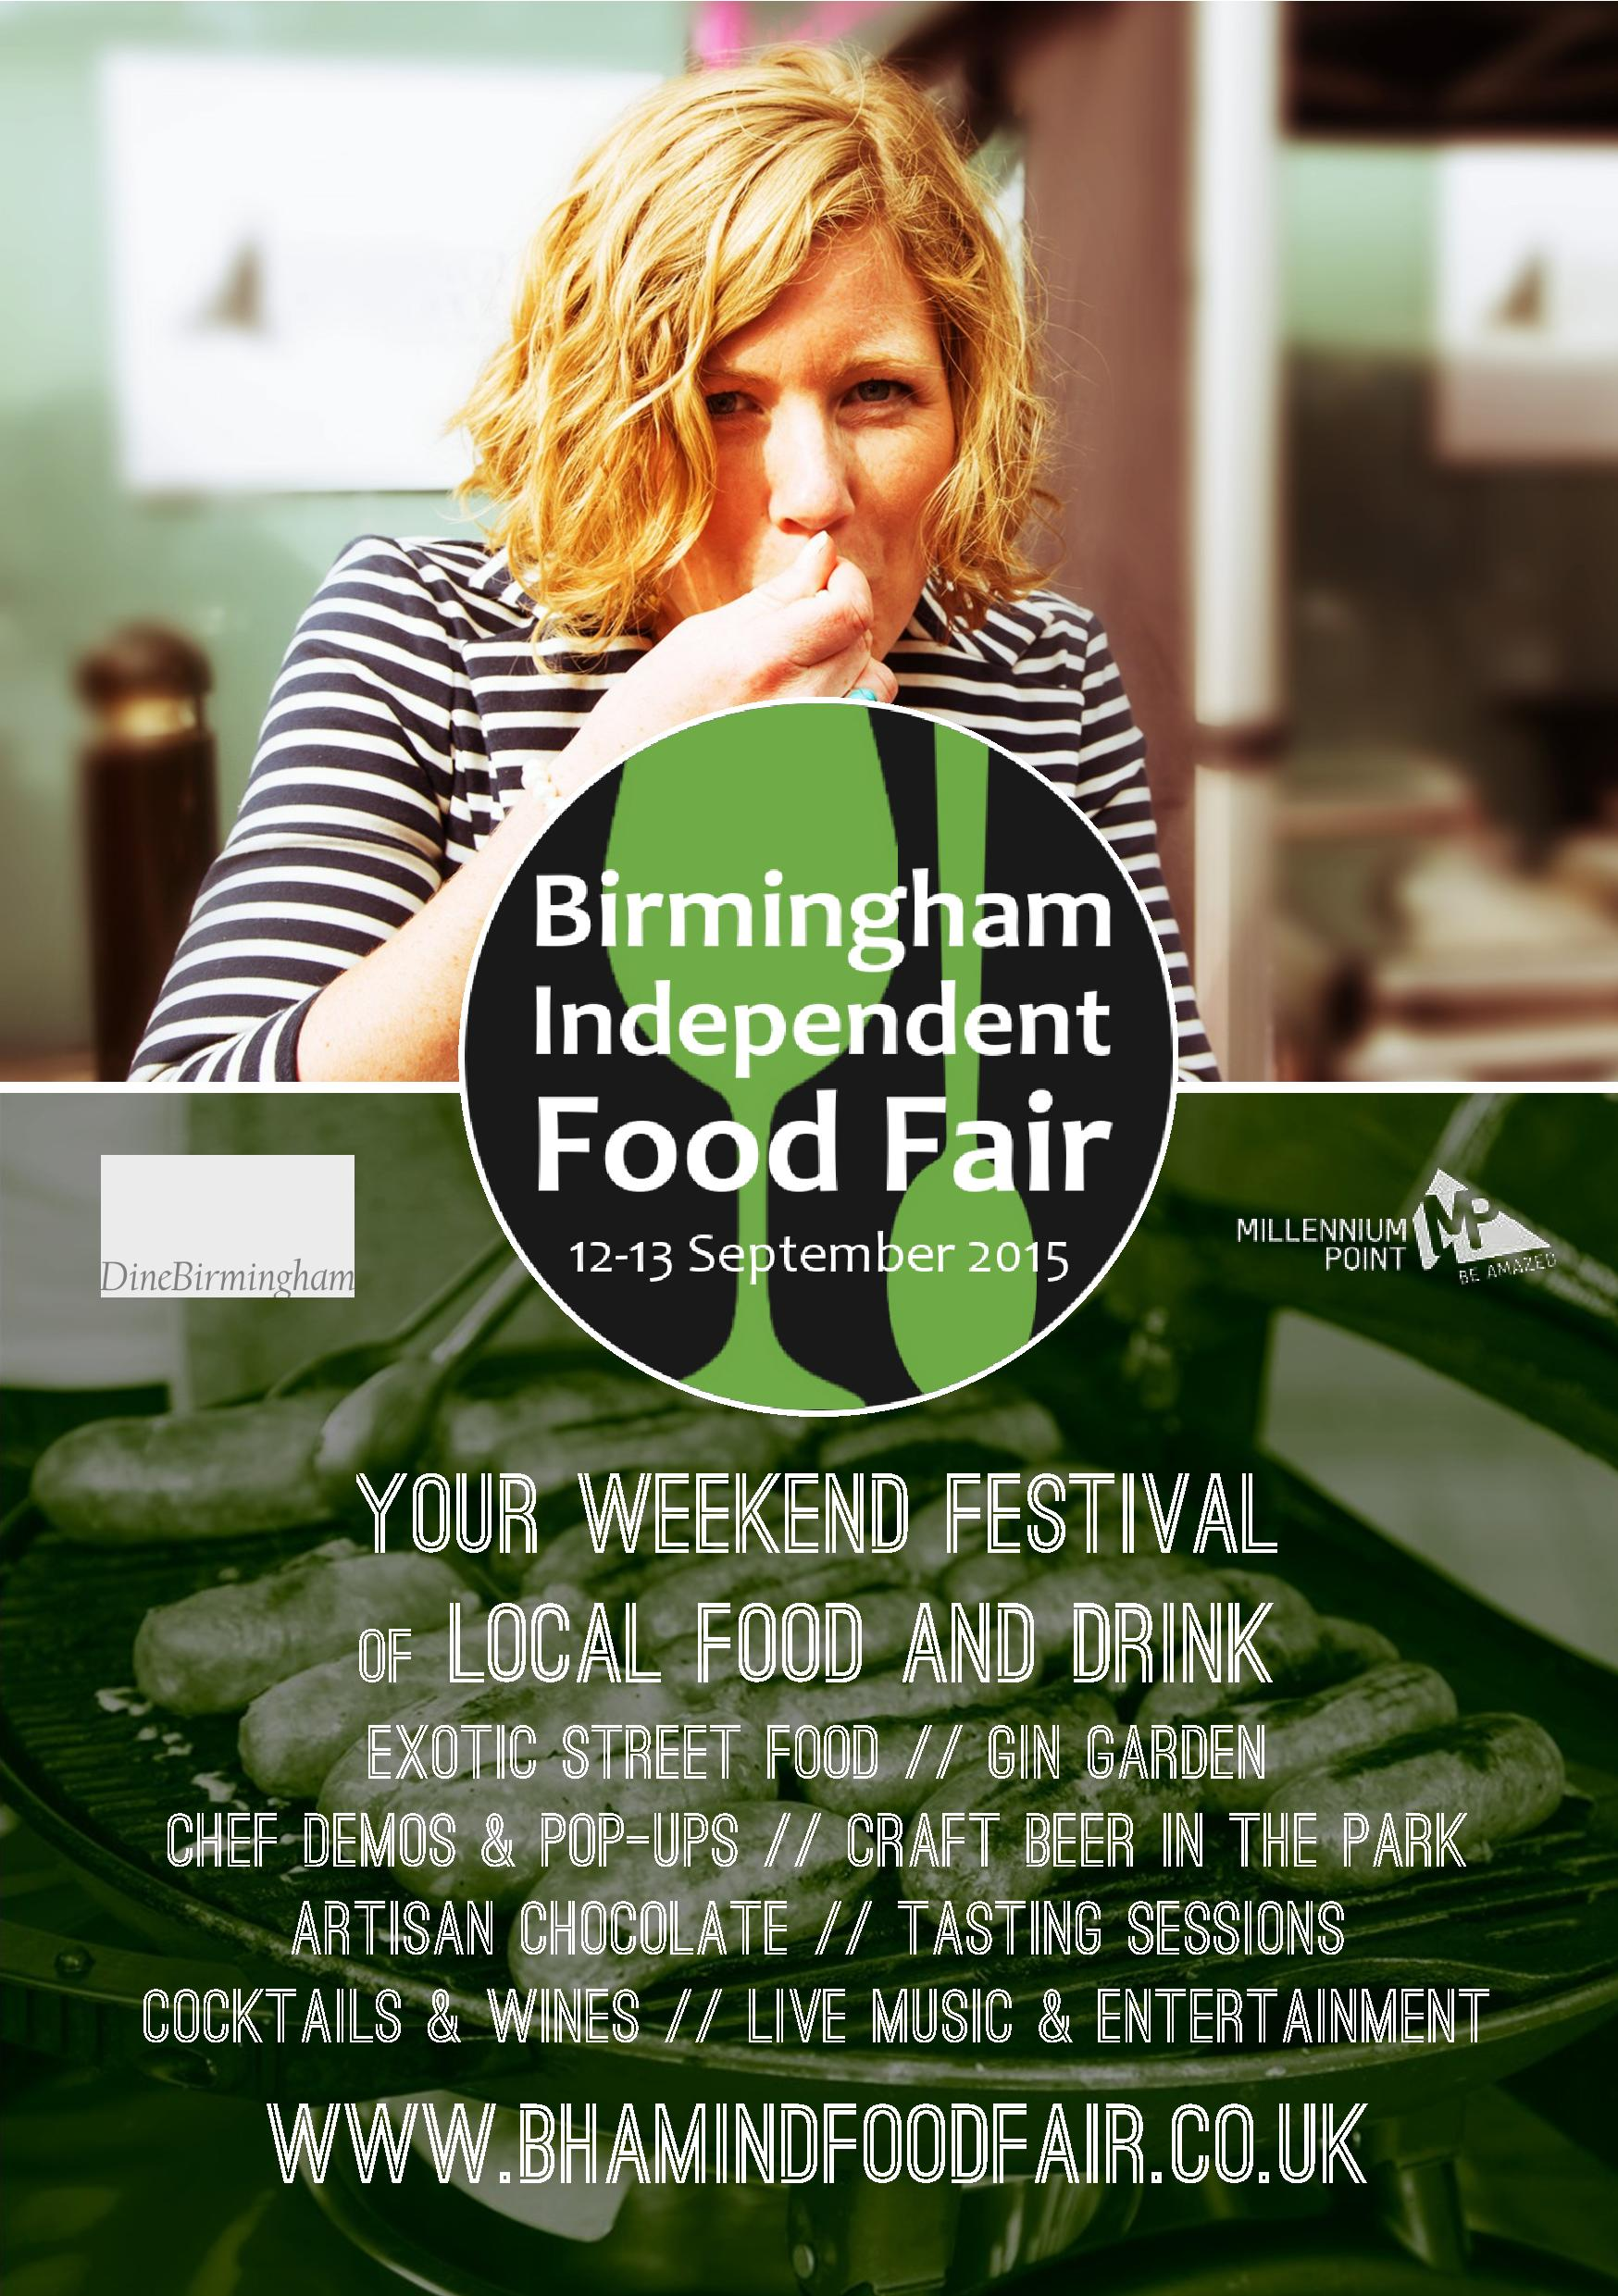 Birmingham Independent Food Fair 2015